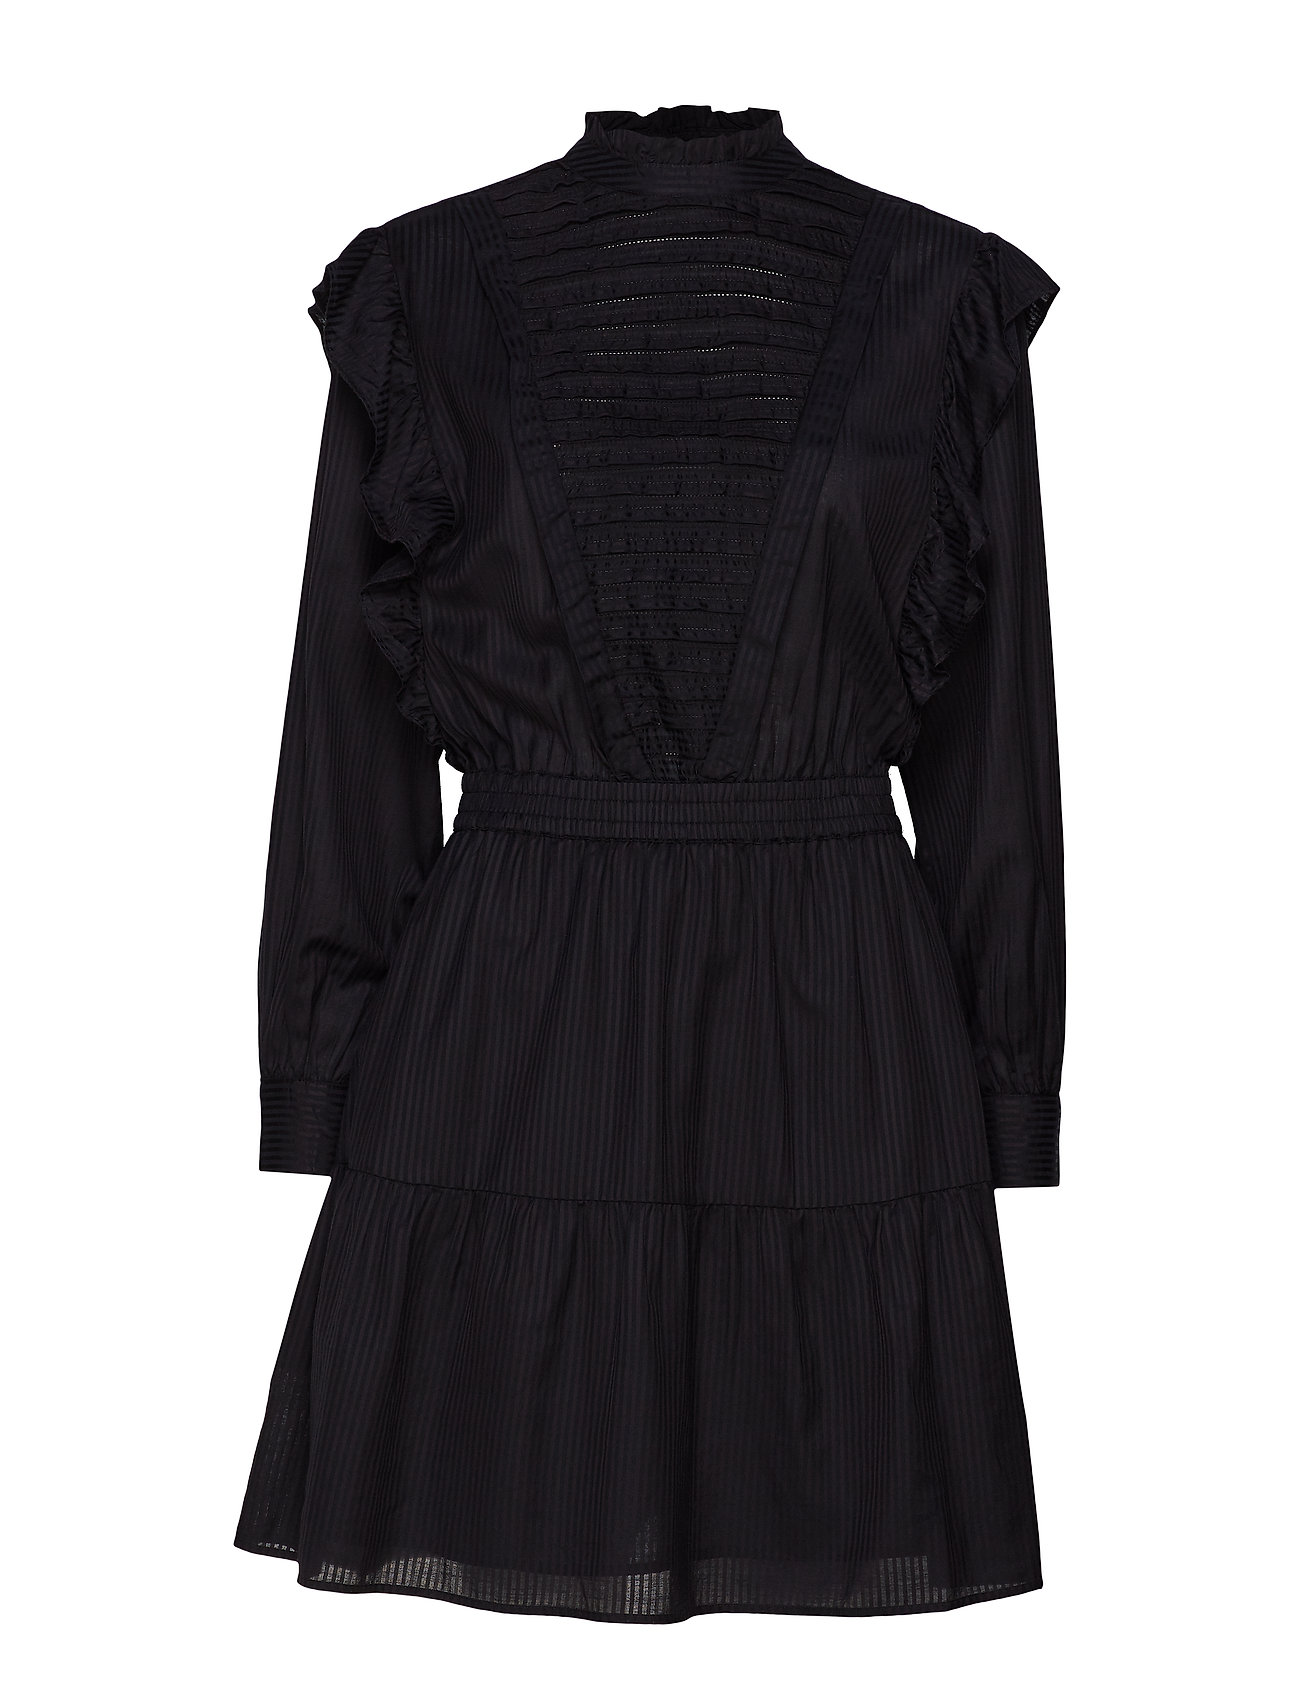 Scotch & Soda Dress with ruffles and ladder details - BLACK